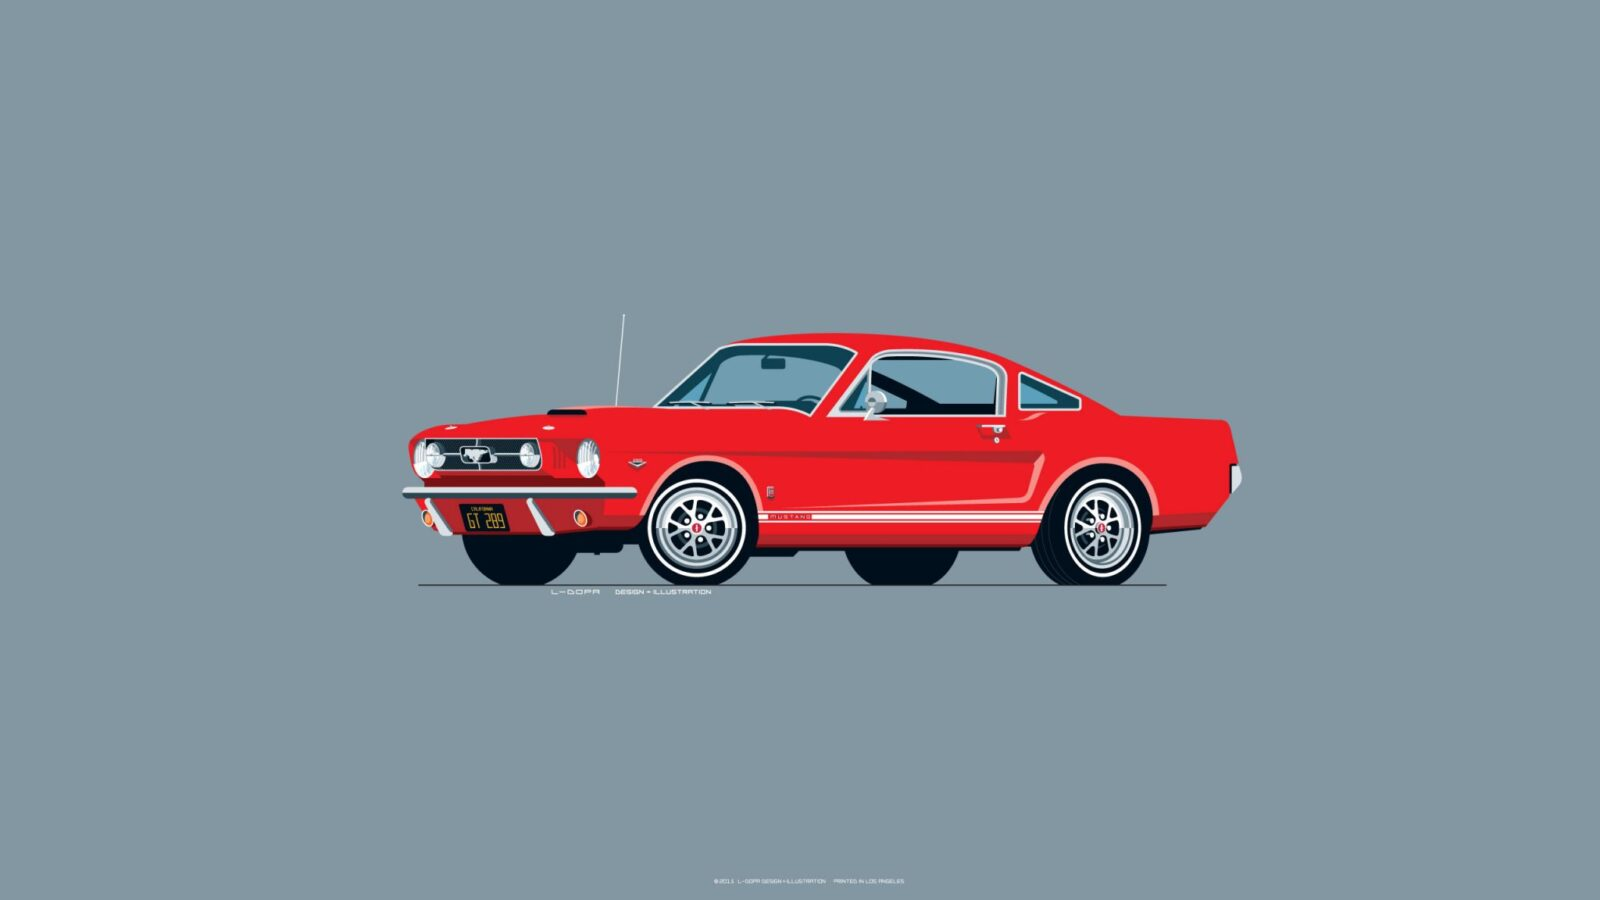 1965 Ford Mustang red 1600x900 - Iconic Automobile Wallpapers